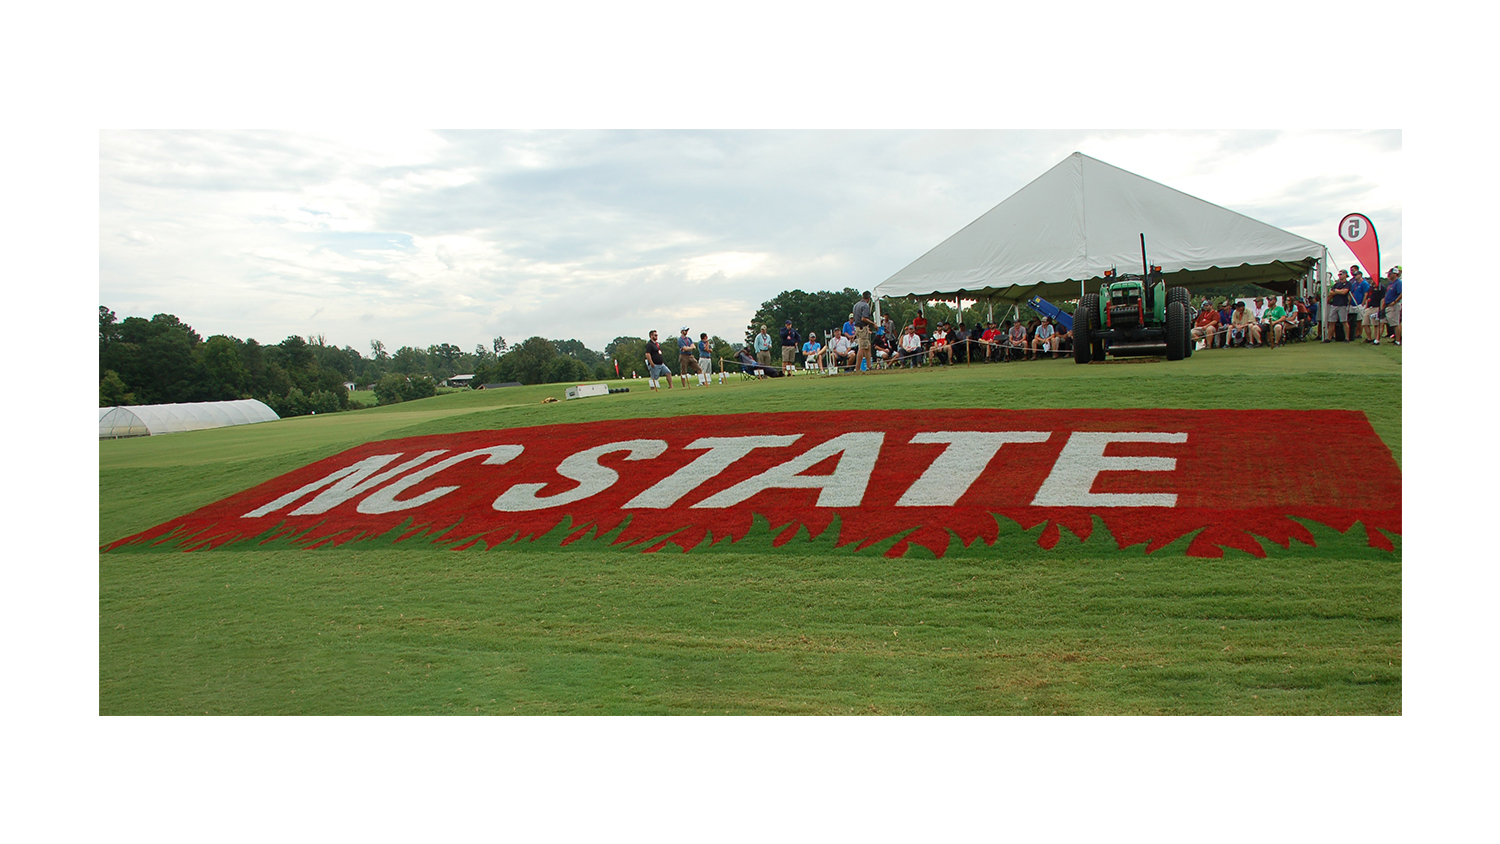 NC State logo on Turf Day